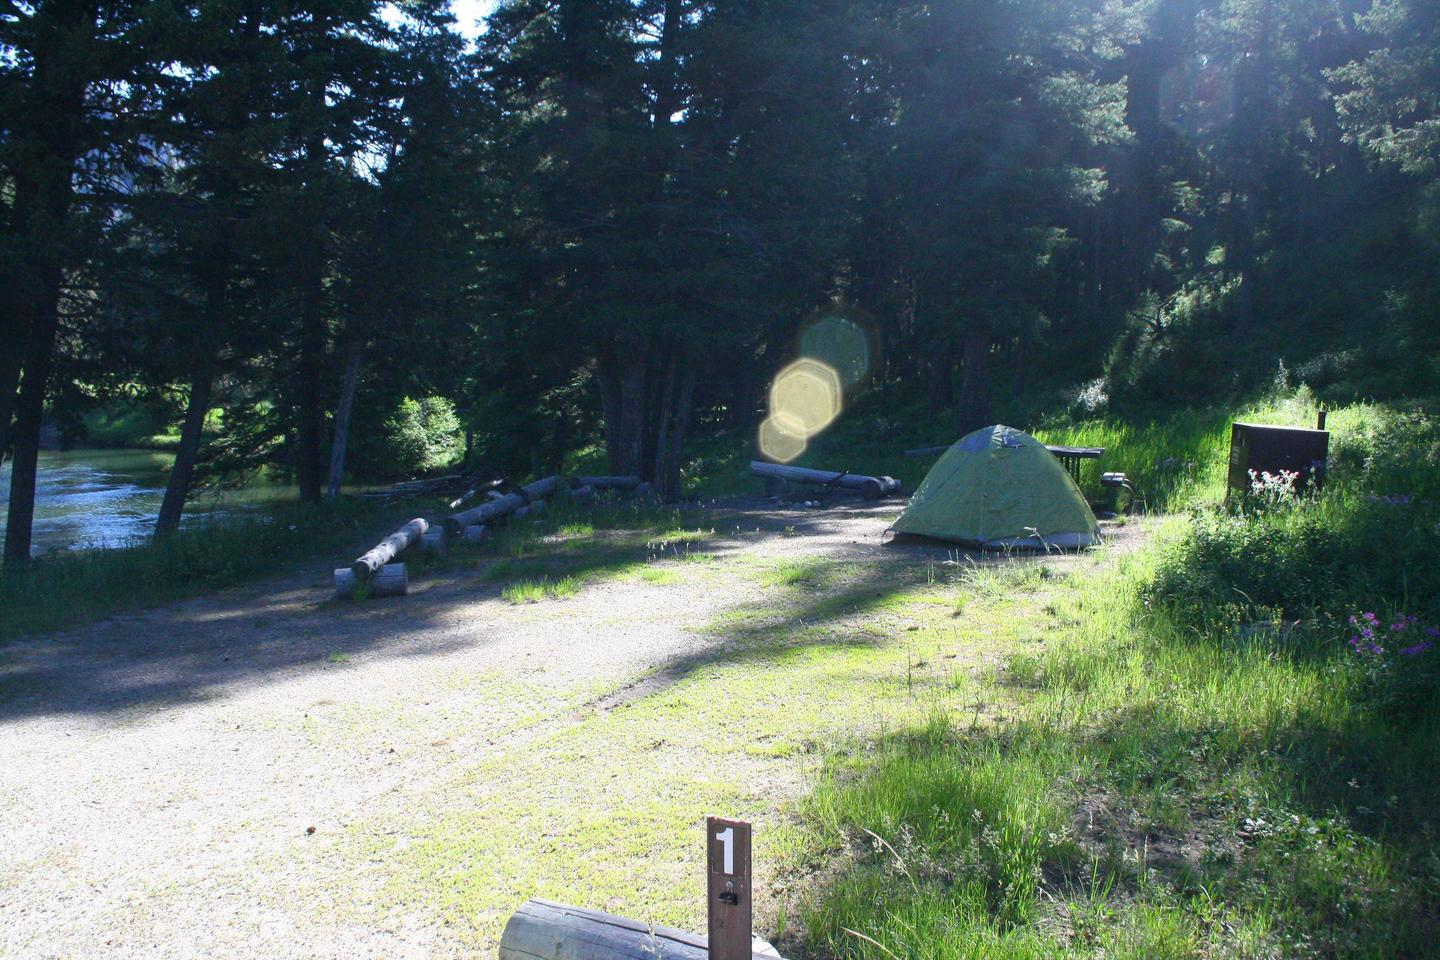 Slough Creek Campground Site #1....Slough Creek Campground Site #1